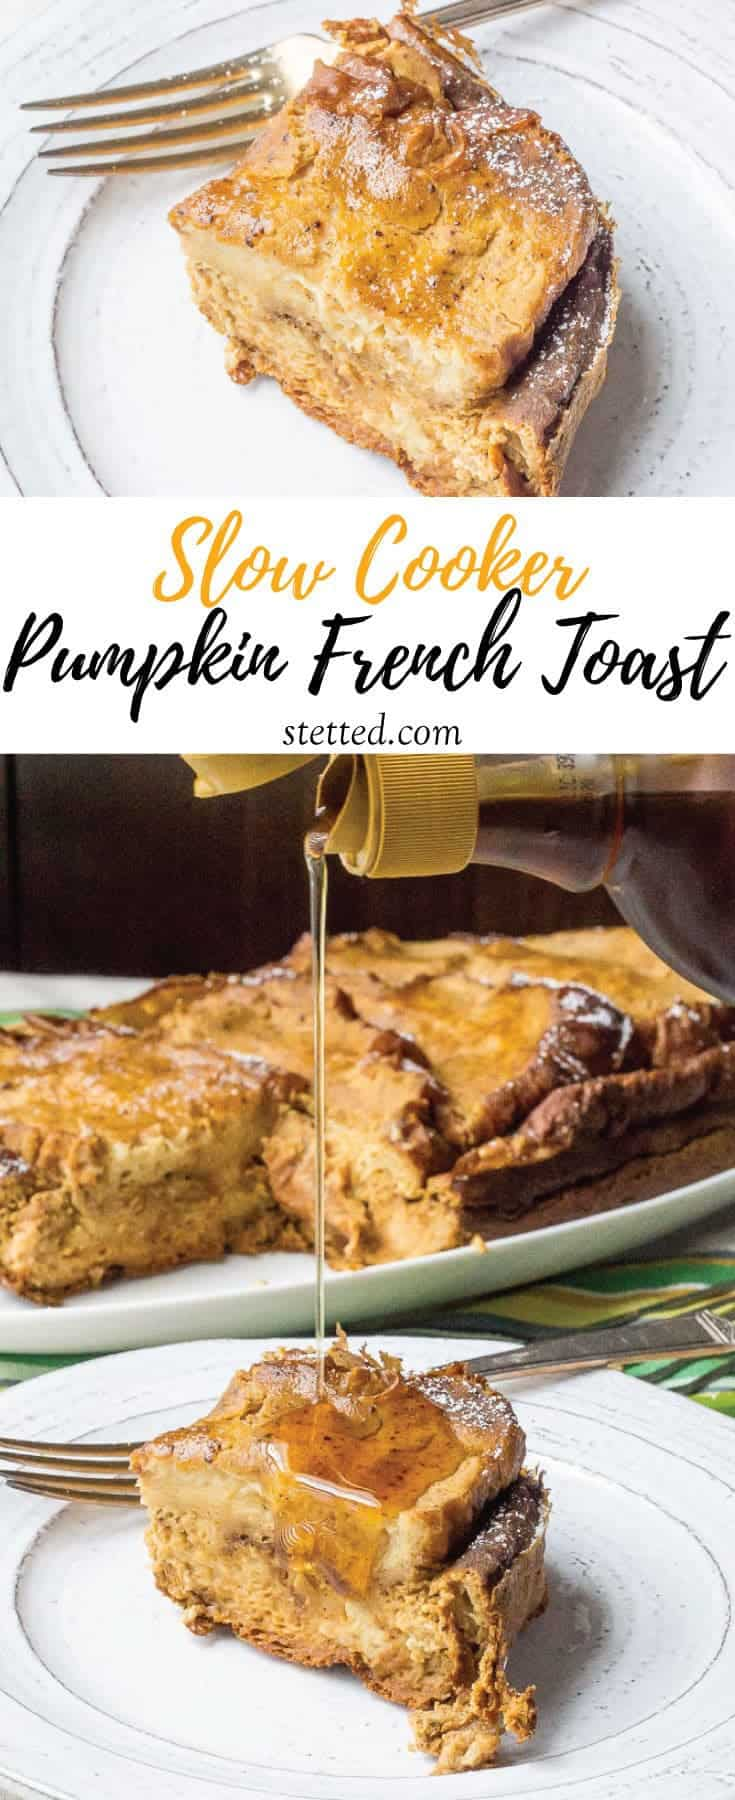 Slow cooker pumpkin French toast is the perfect hands-off fall breakfast! Get it ready the night before and wake up to deliciousness.